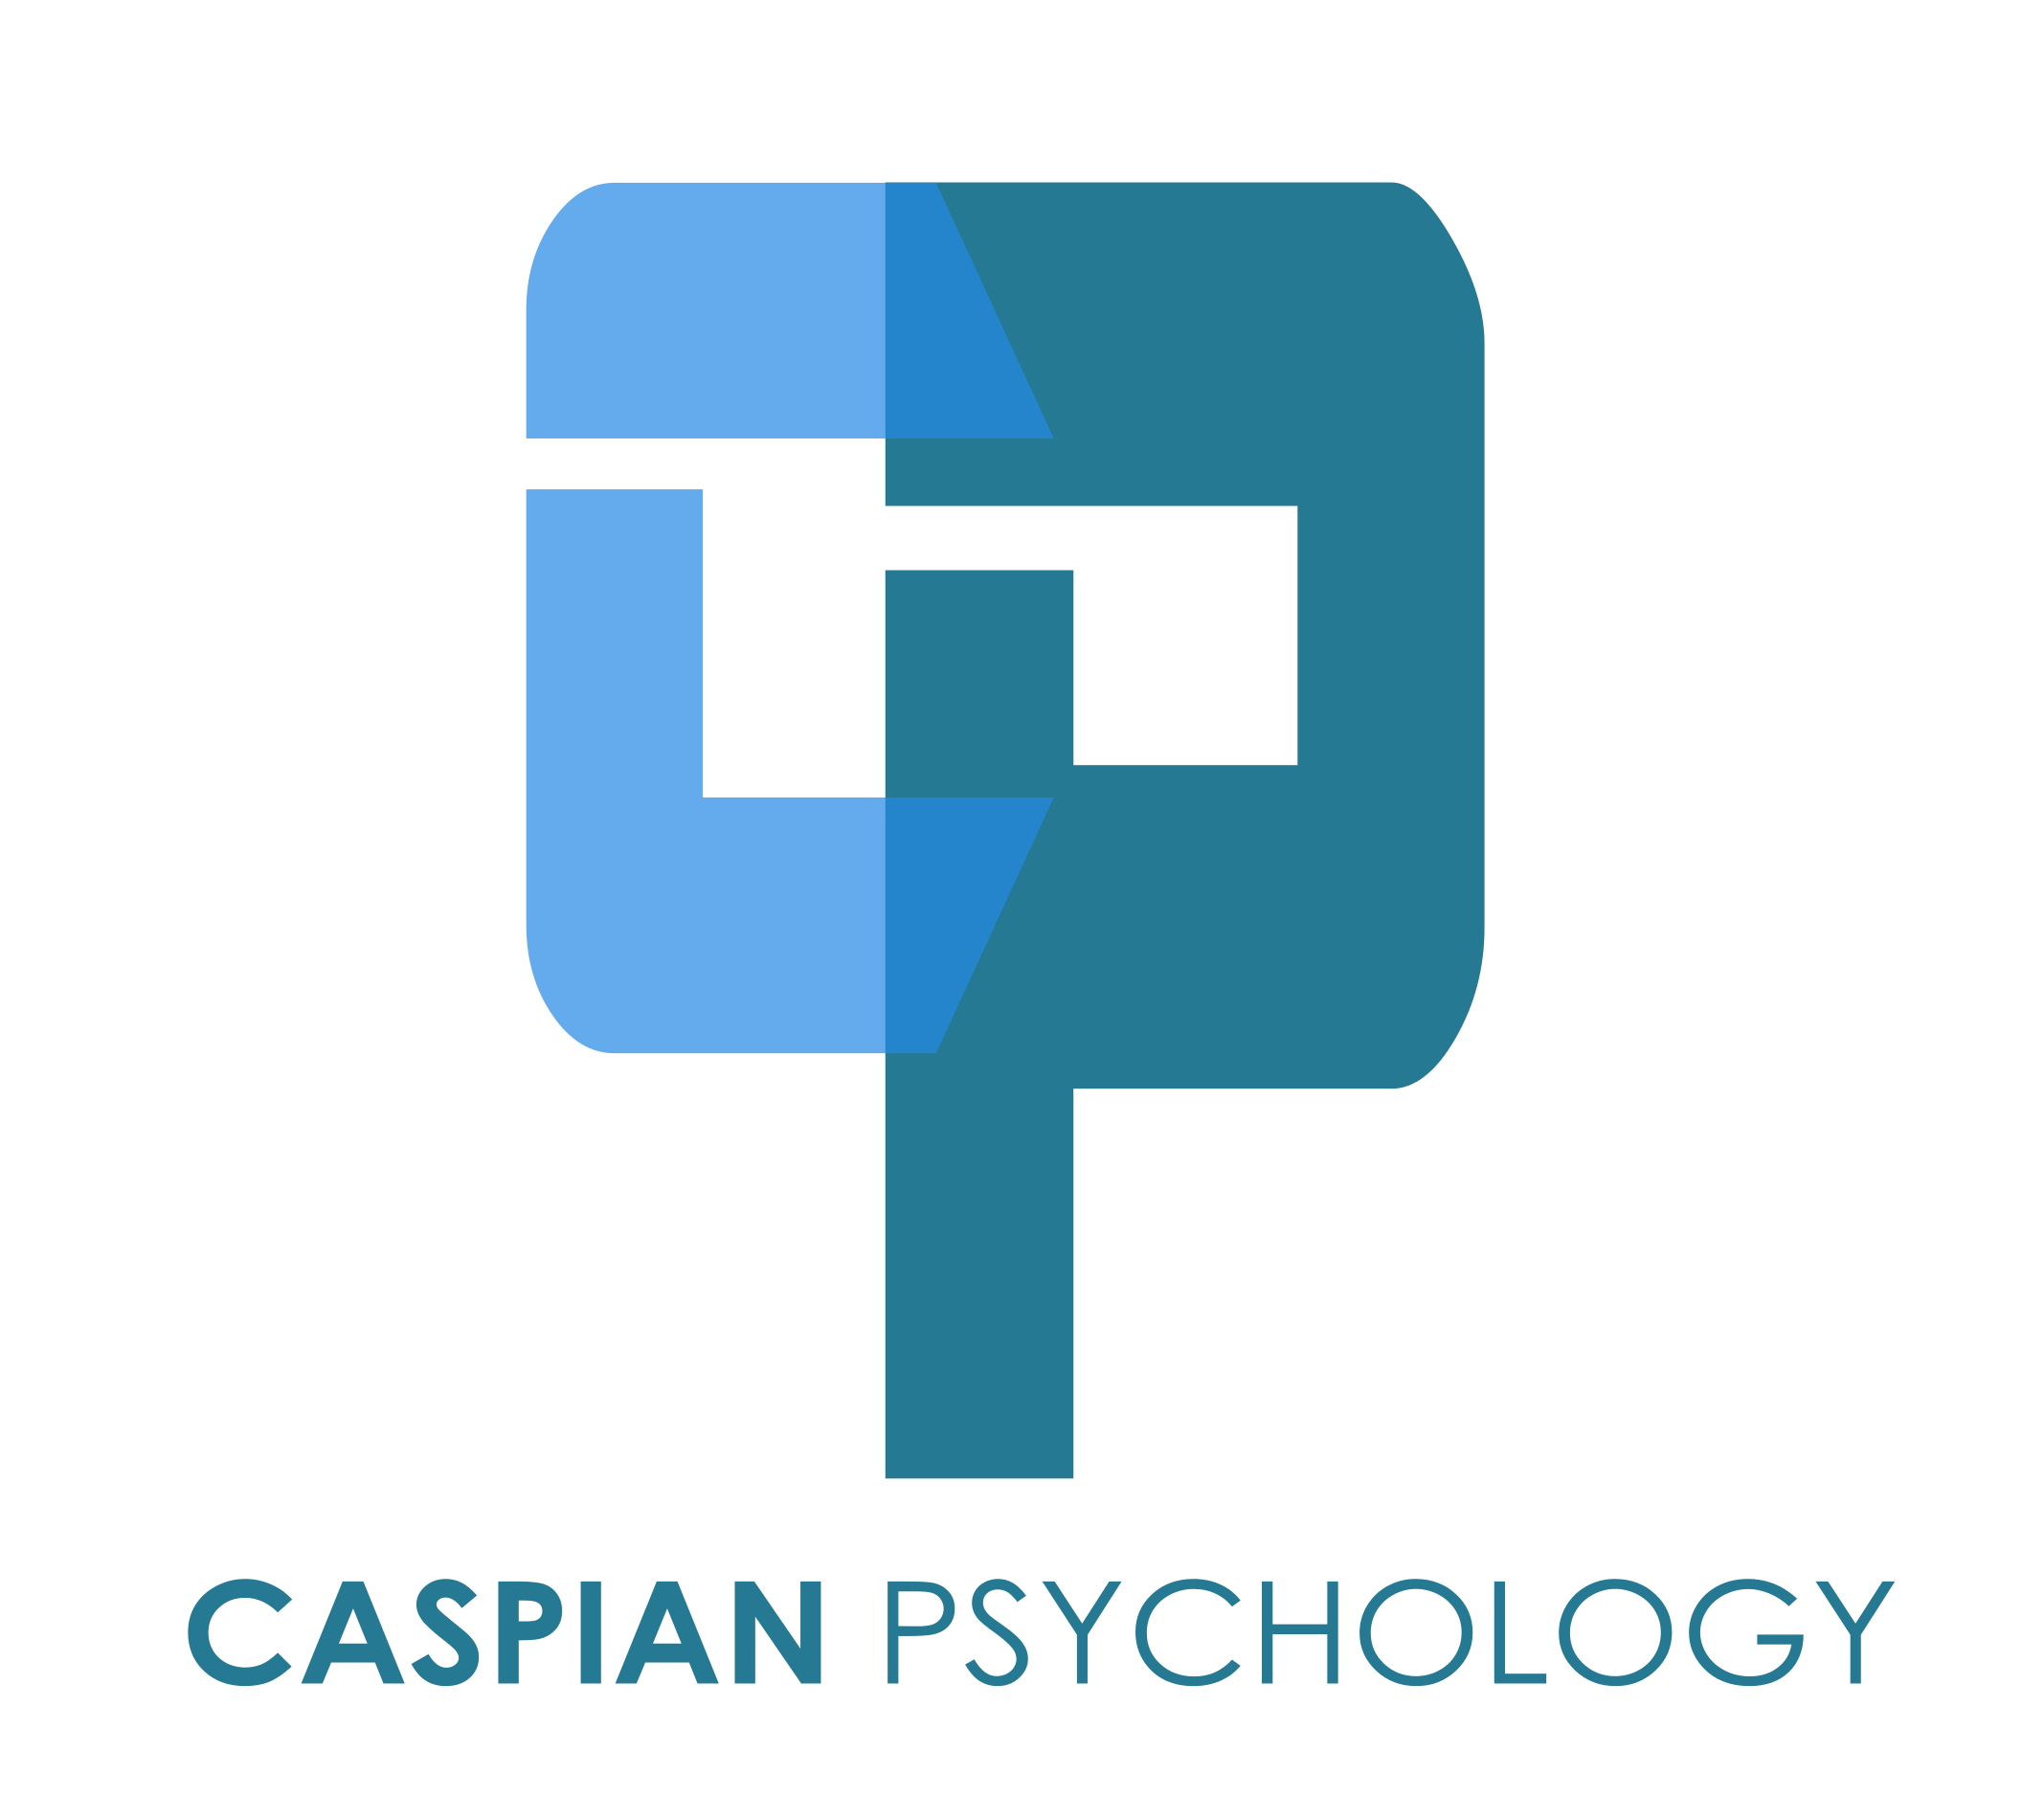 CP_ONLINE-LOGO.png